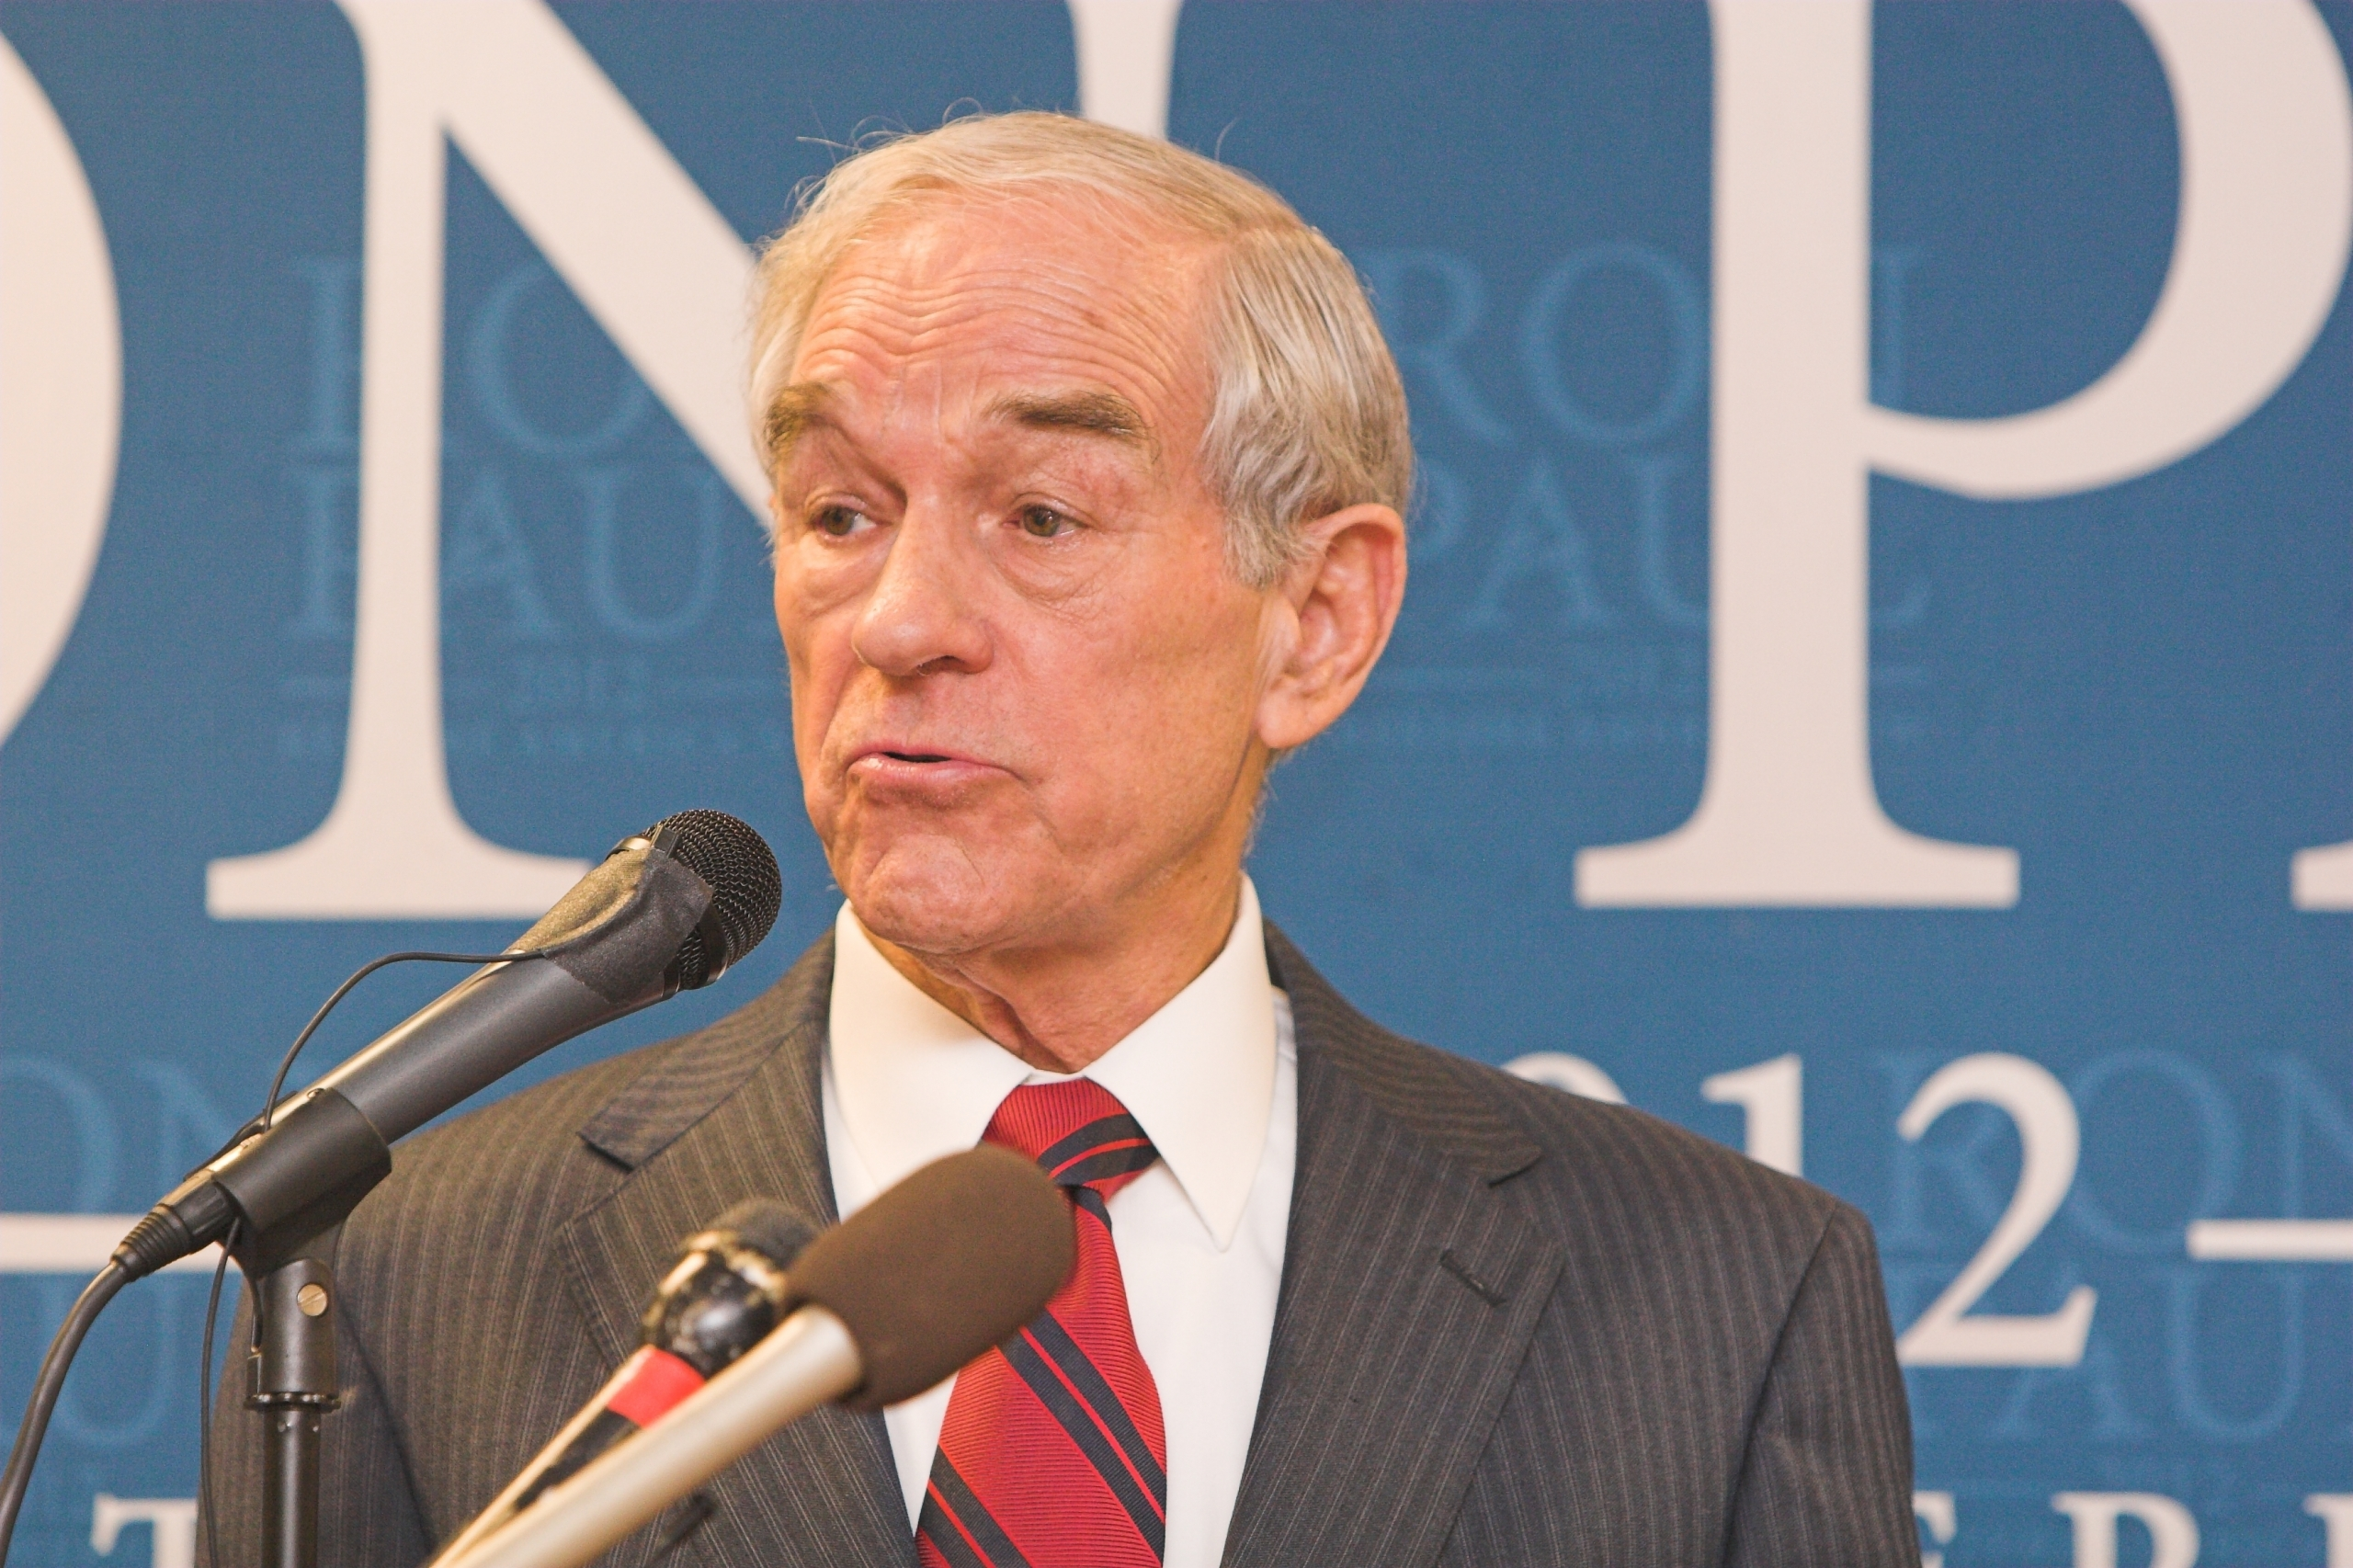 Ron paul cryptocurrency trade binary options through offshore corp